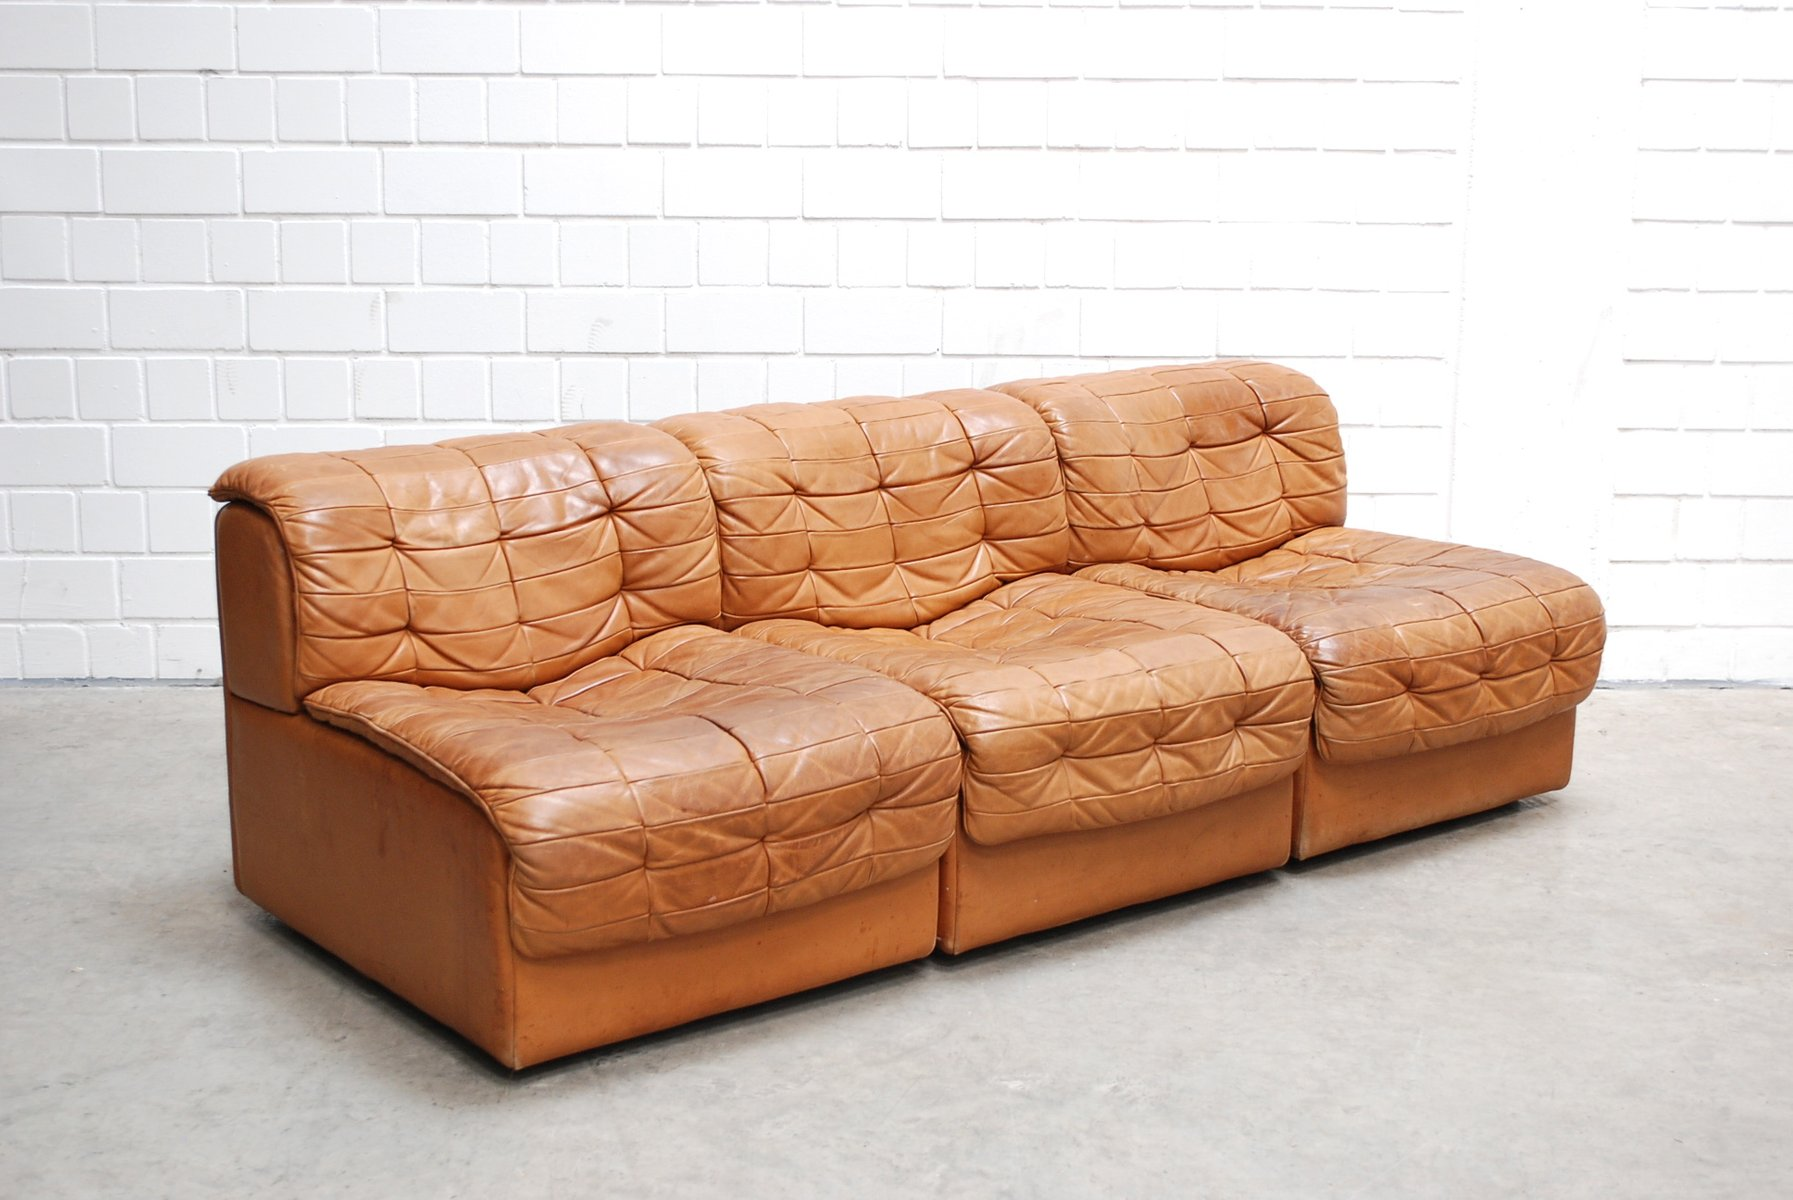 swiss modular ds 11 cognac leather sofa from de sede 1985 for sale at pamono. Black Bedroom Furniture Sets. Home Design Ideas